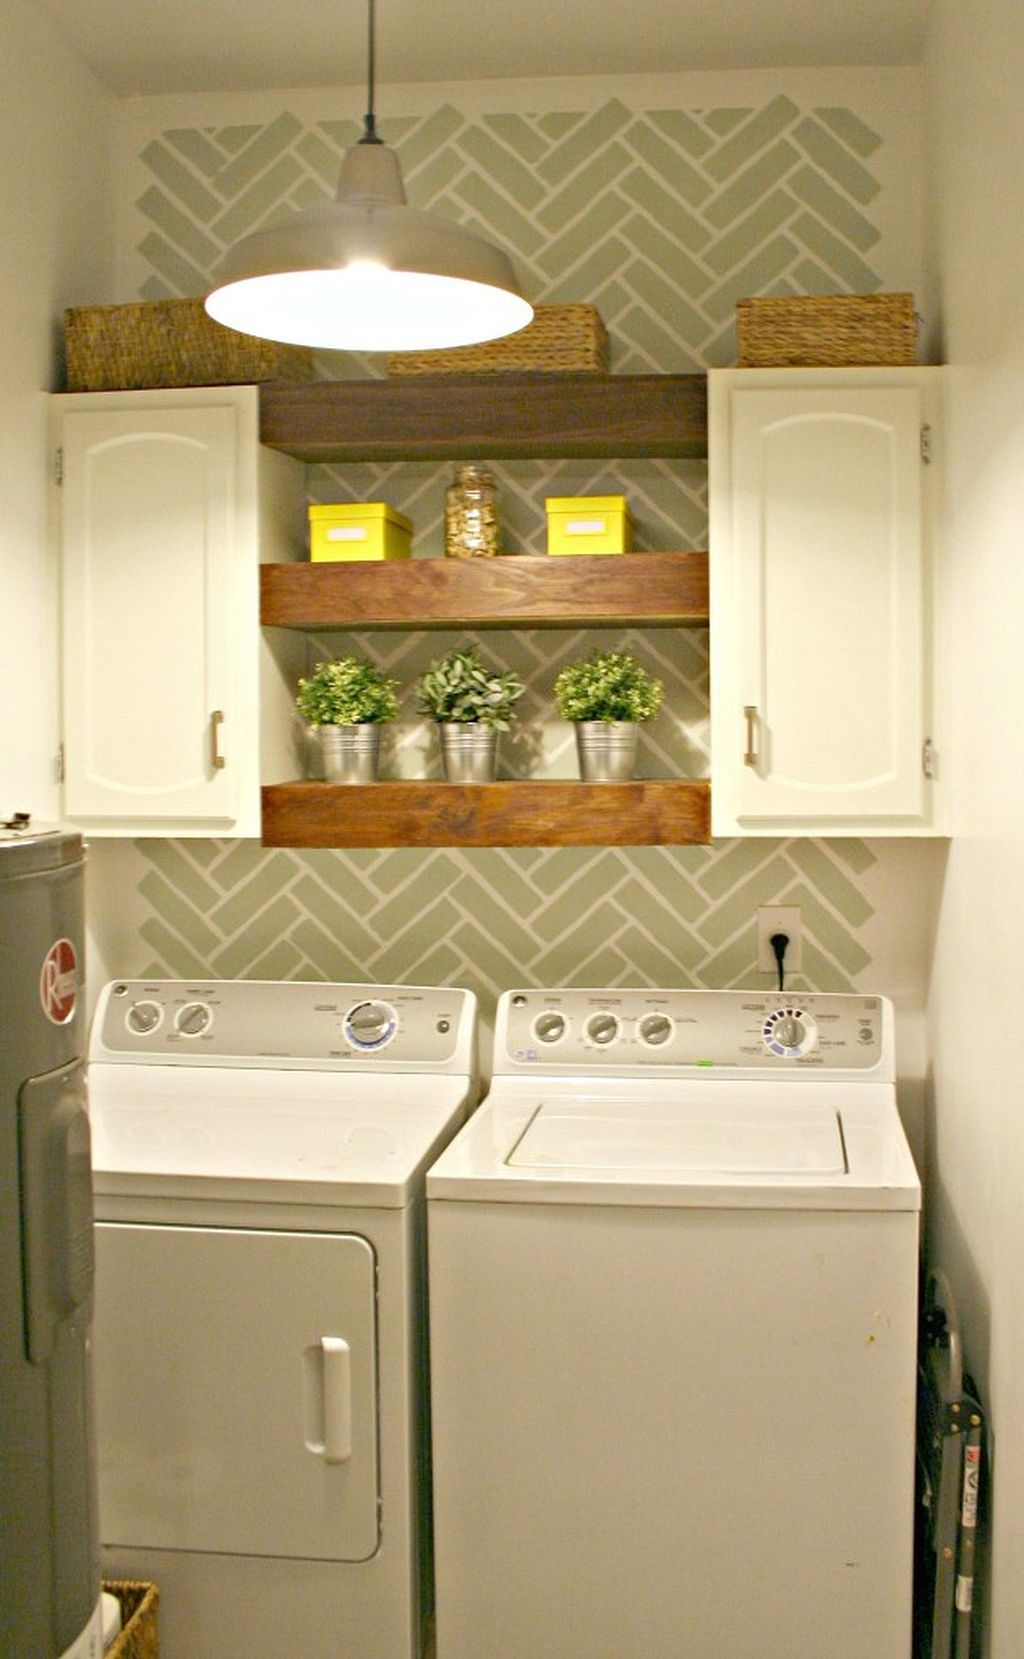 laundry room cabinet ideas Pin by Modern House on Furniture in 2018 | Pinterest | Laundry  laundry room cabinet ideas